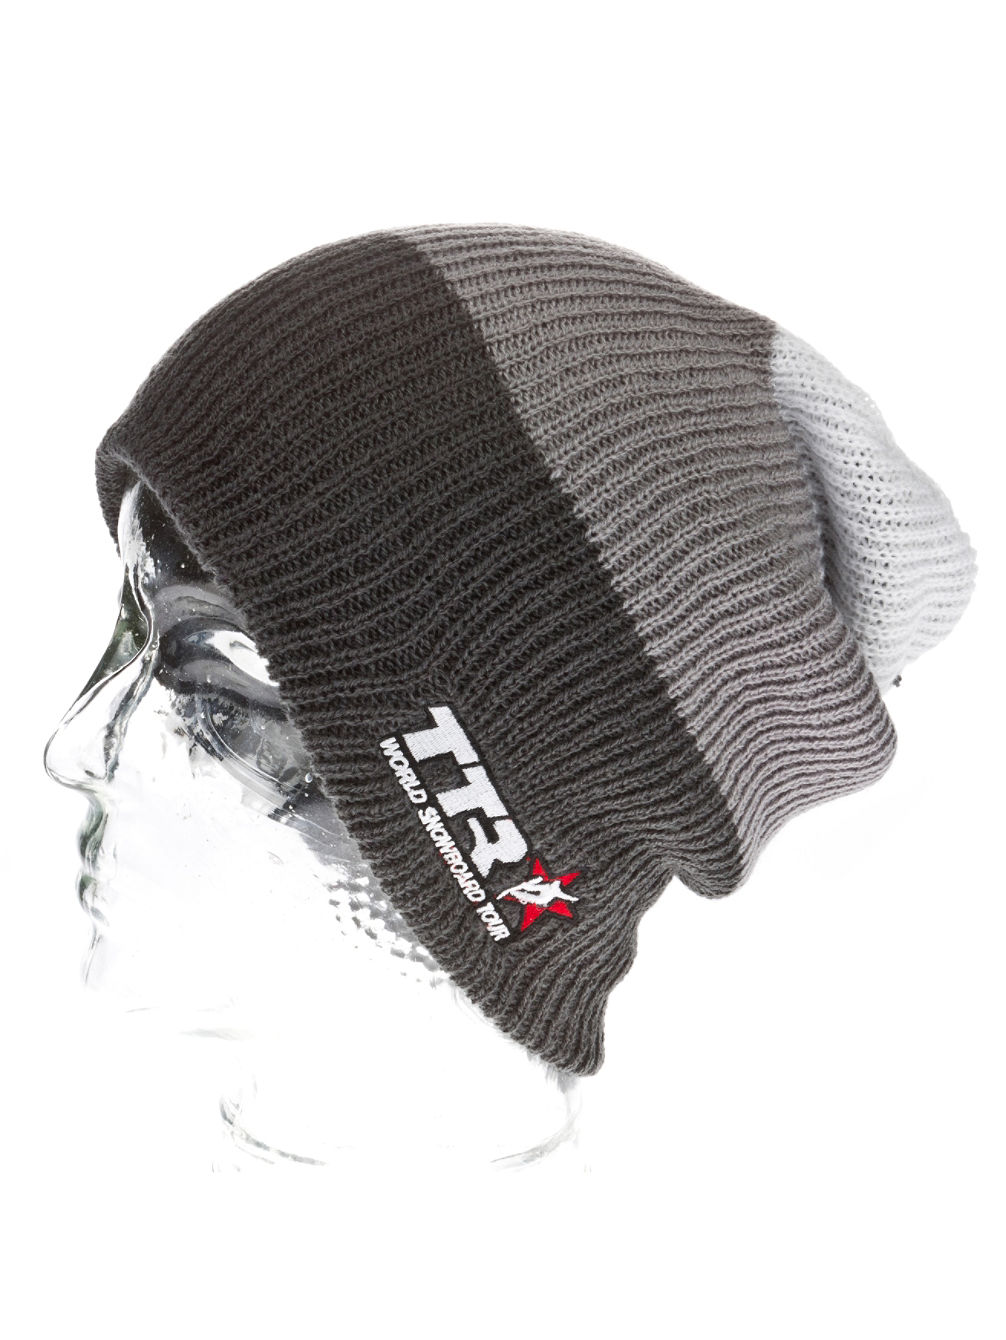 TTR World Snowboard Tour Beanie by Neff